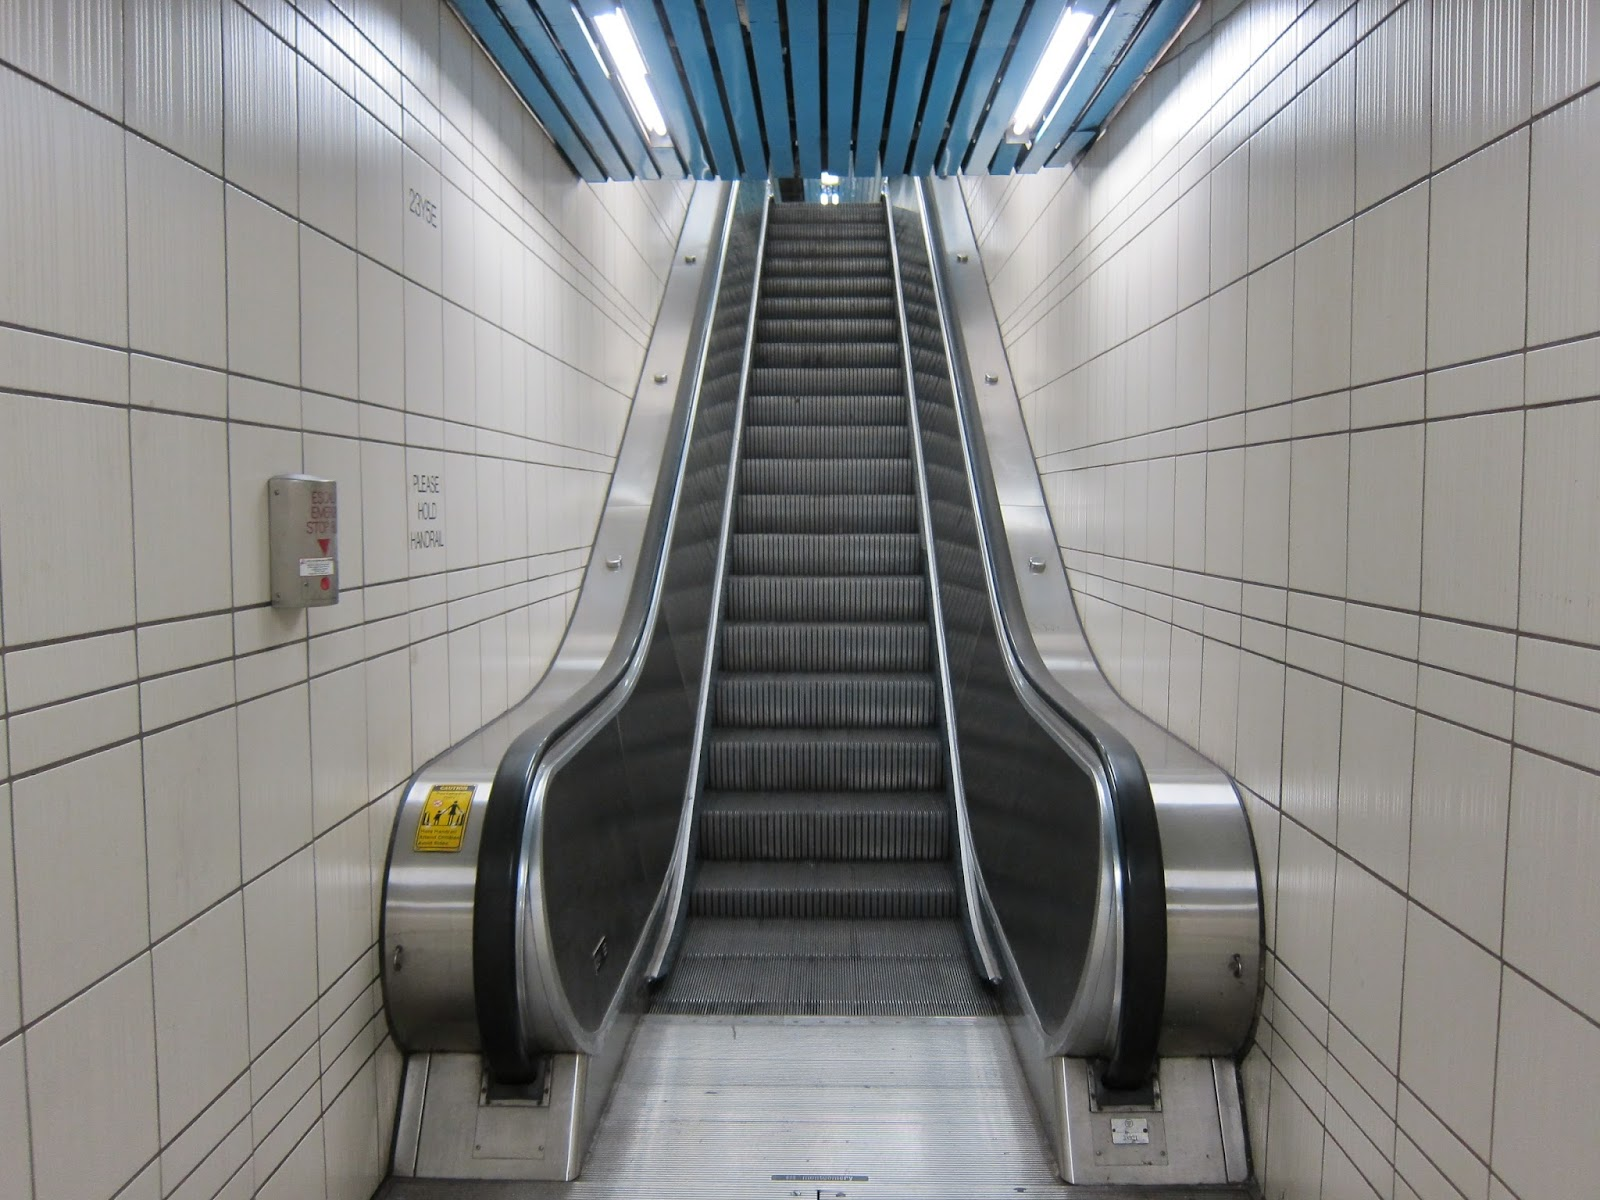 Escalator at North York Centre